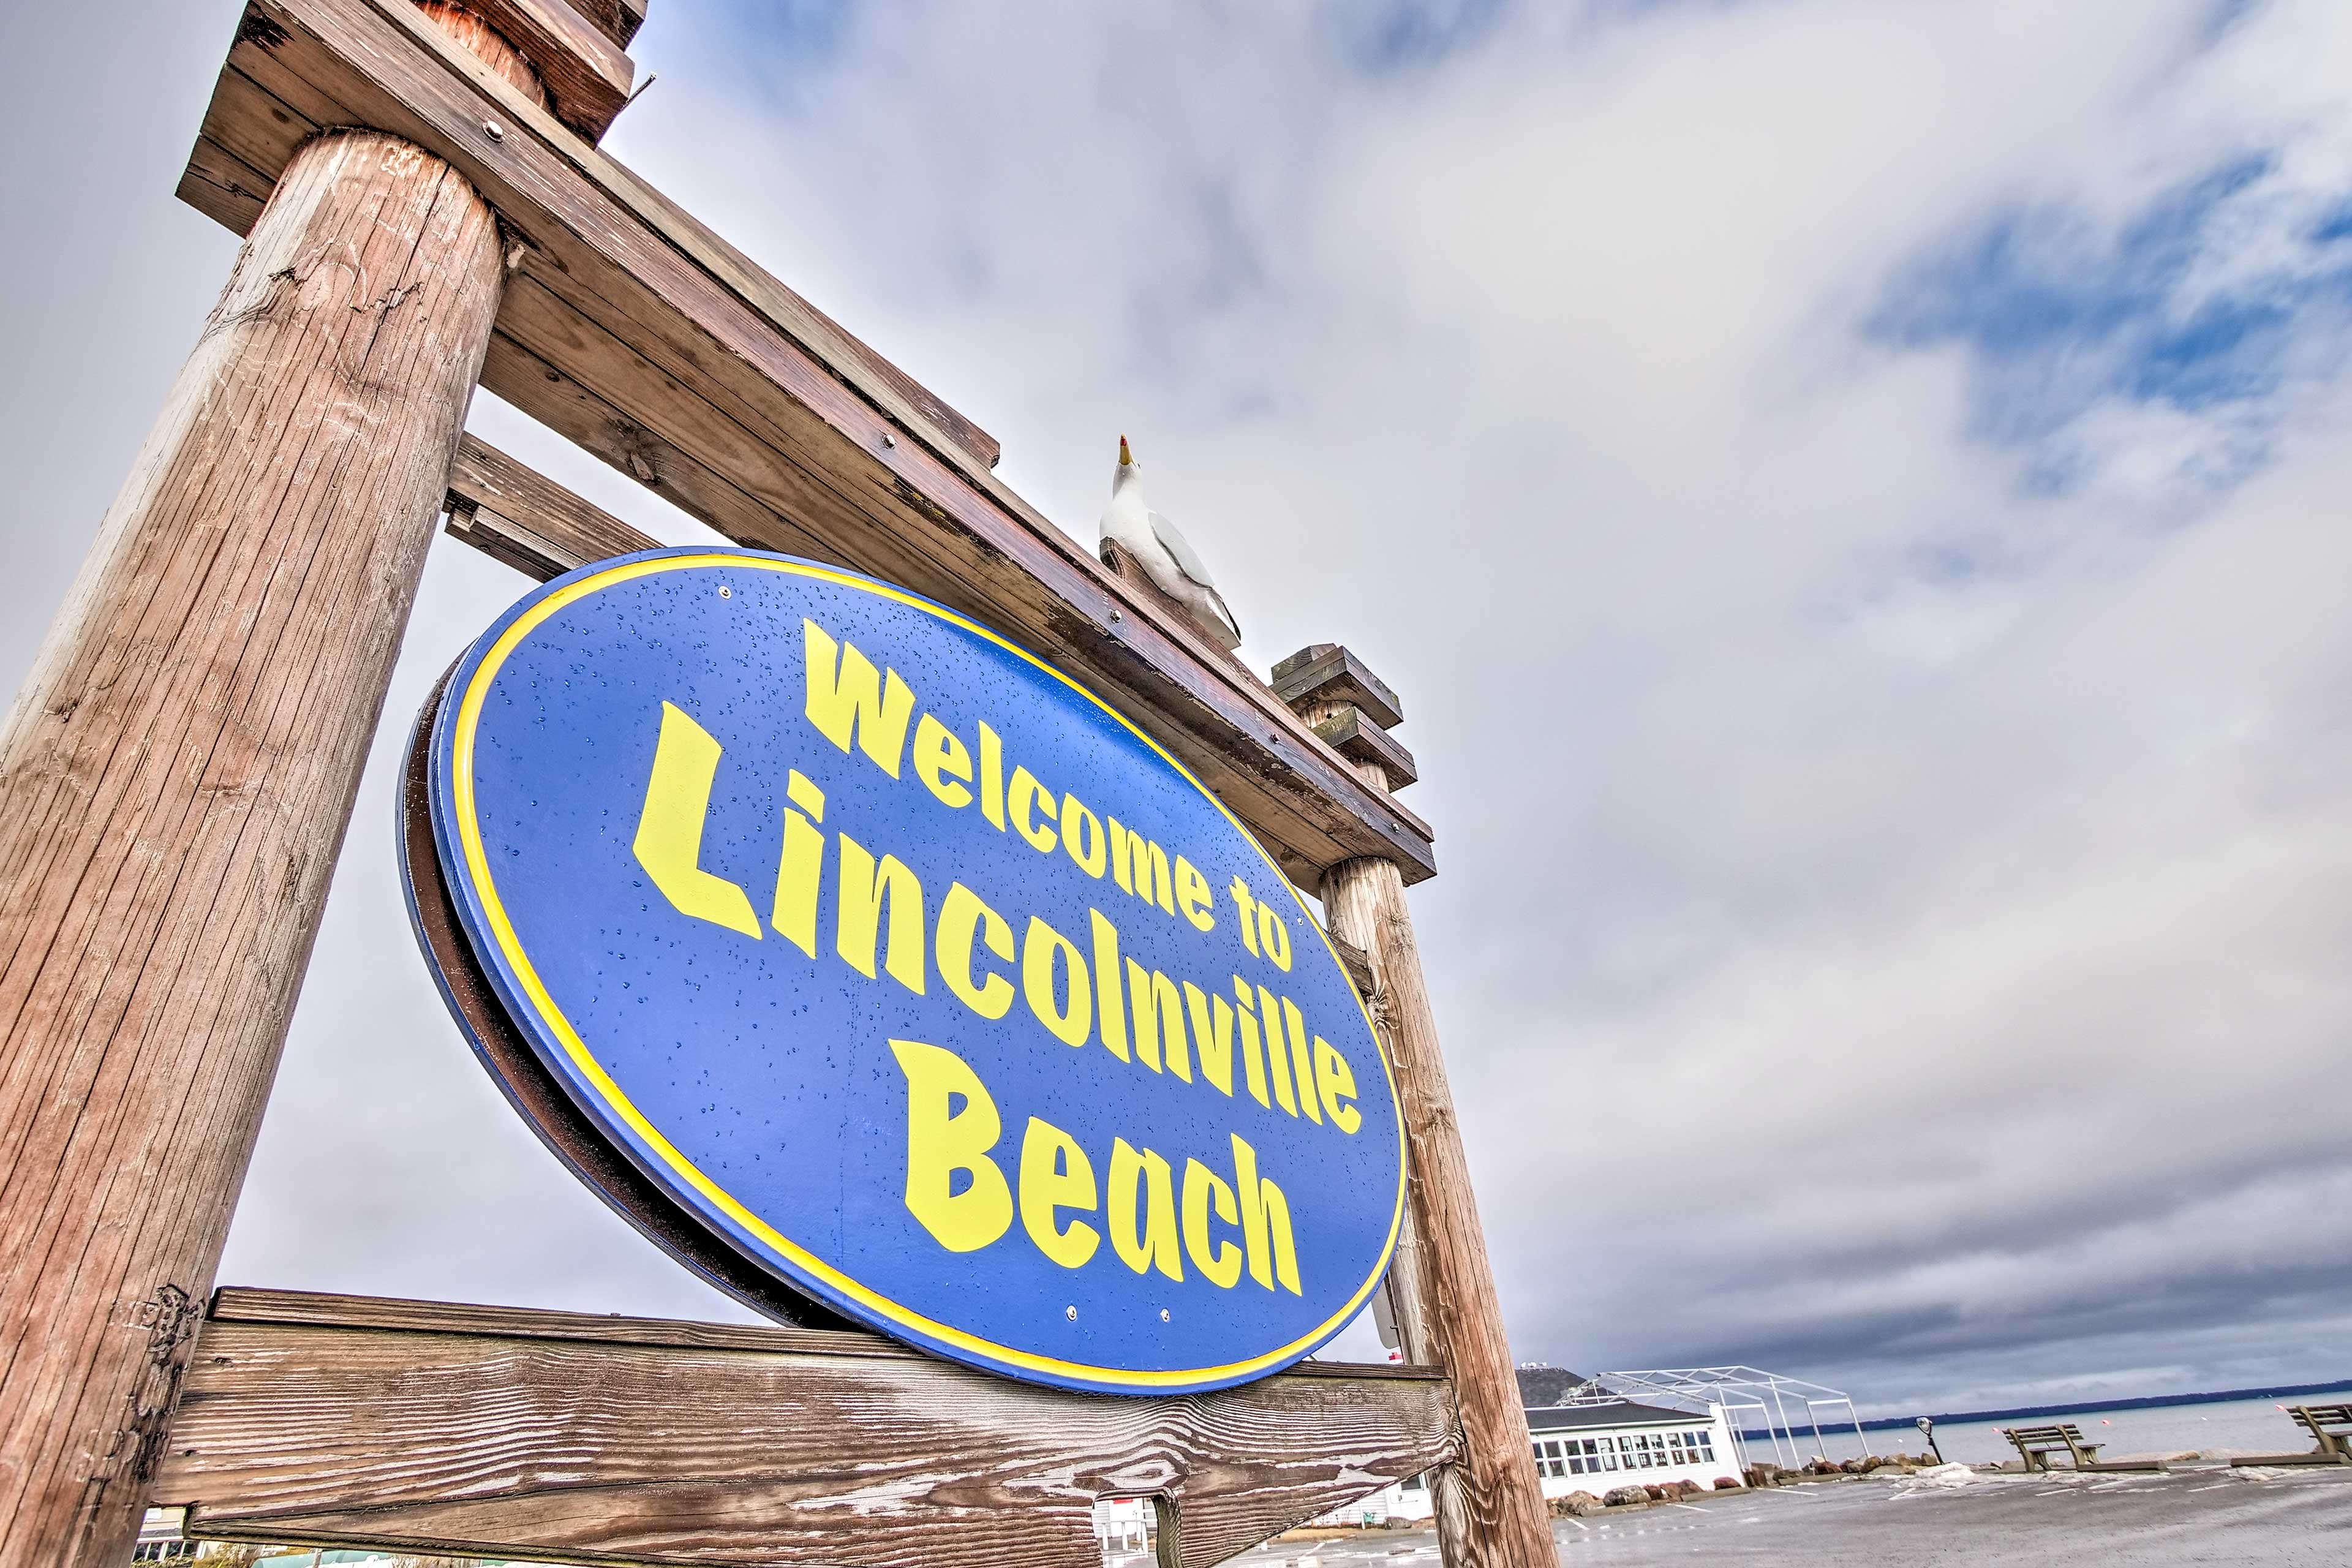 Lincolnville Beach is a stone's throw away.